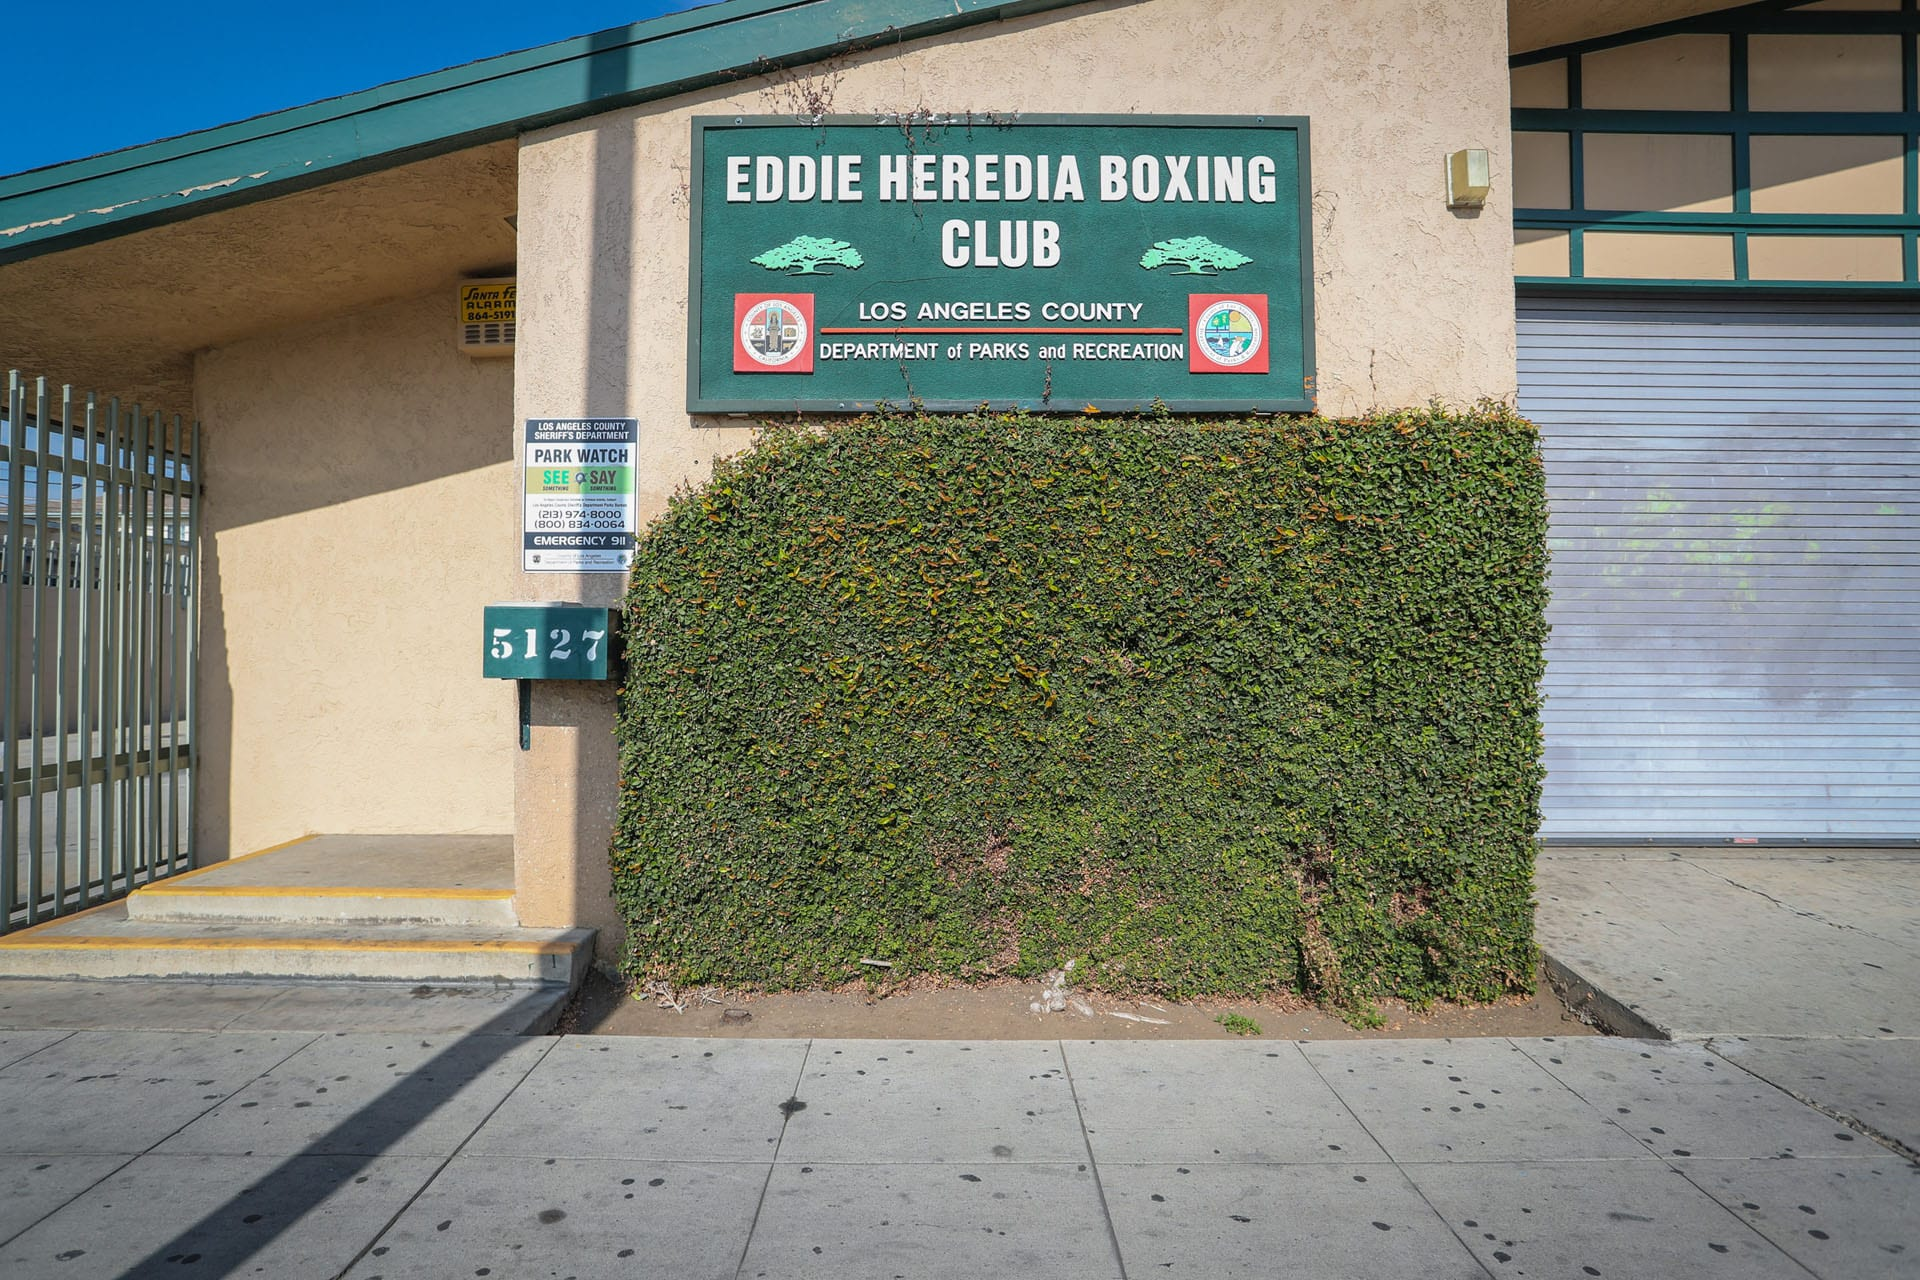 Eddie Heredia Boxing Club sign